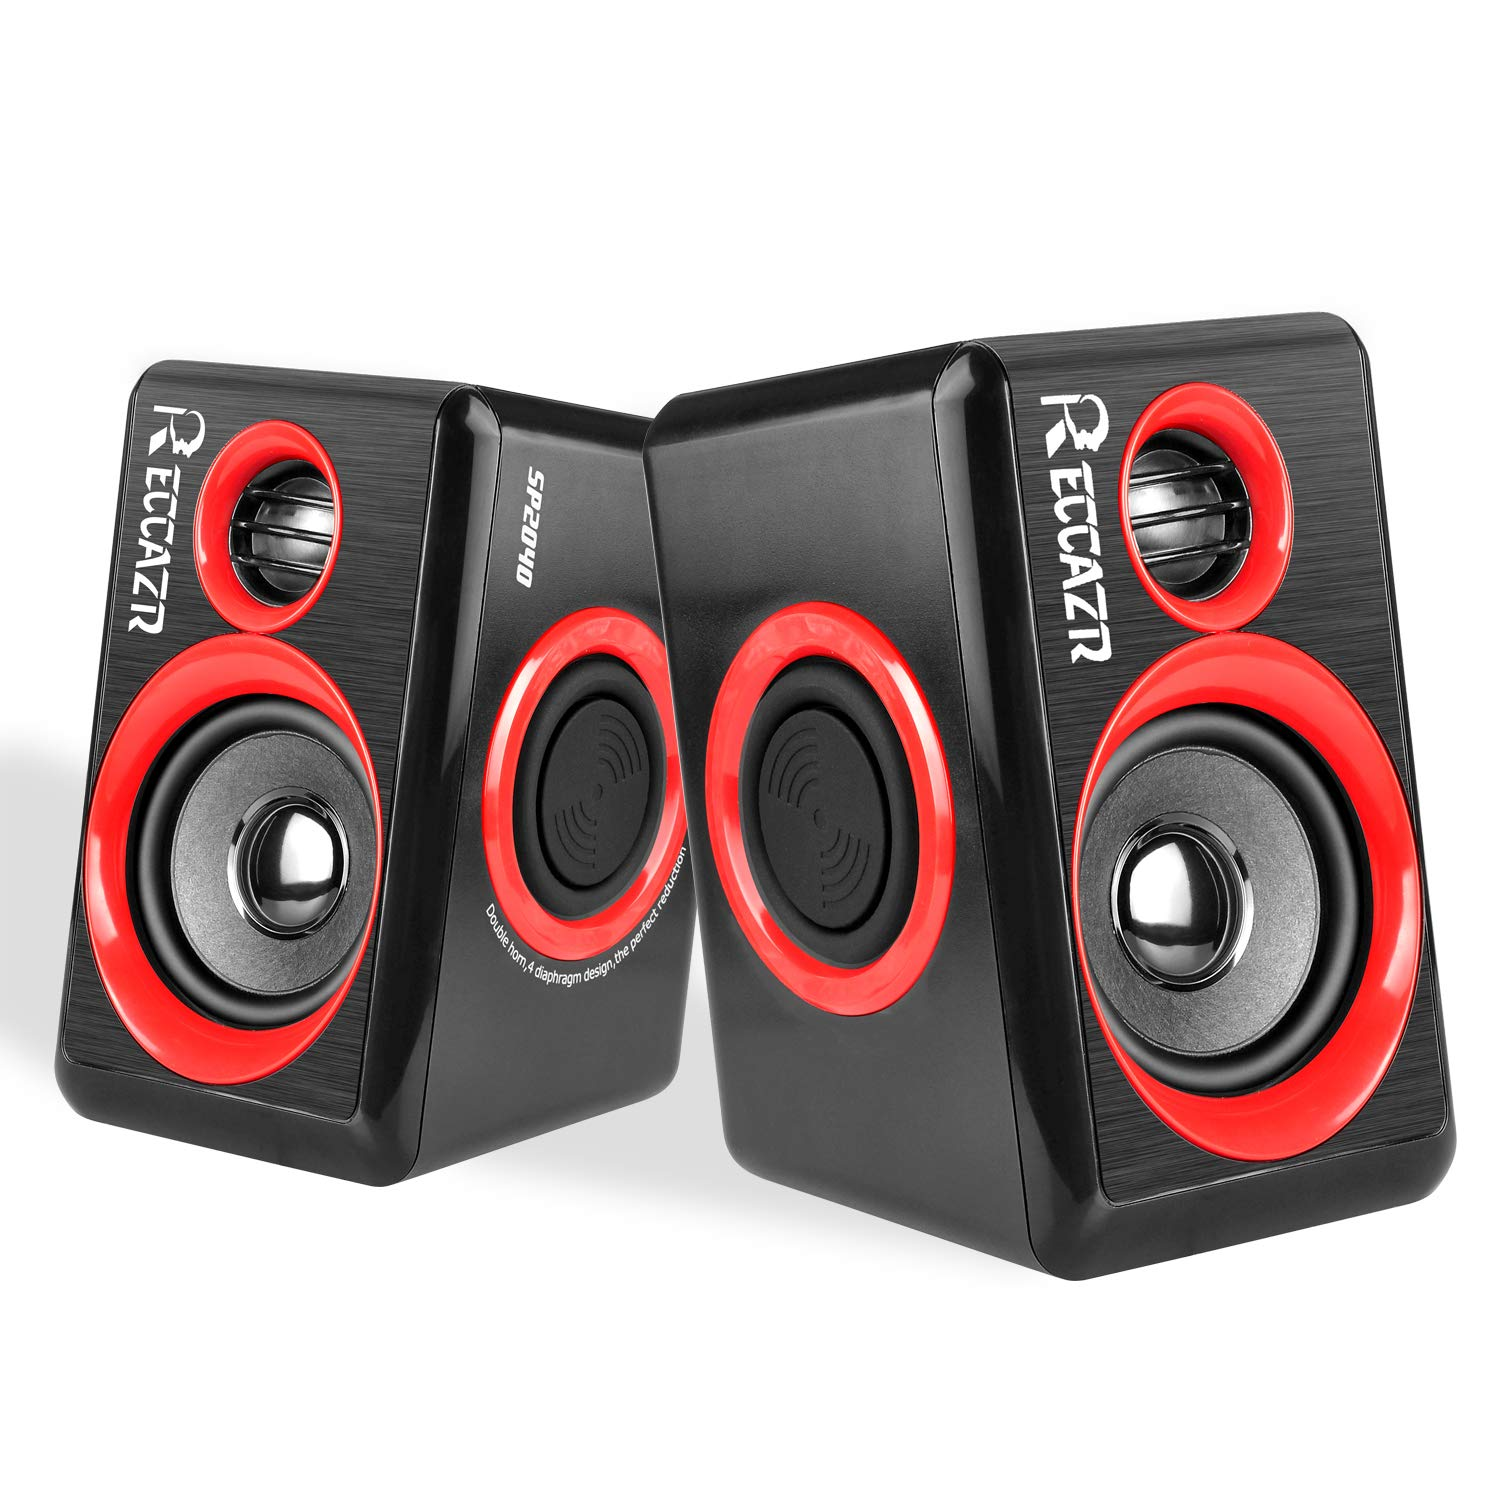 Computer Speakers with Stereo Sound, RECCAZR LED Colorful Desktop Speakers,63 inches Cable Length,USB Powered, 2.0 Channel Surround Speakers for Laptop/PC/Smart Phone SP2070